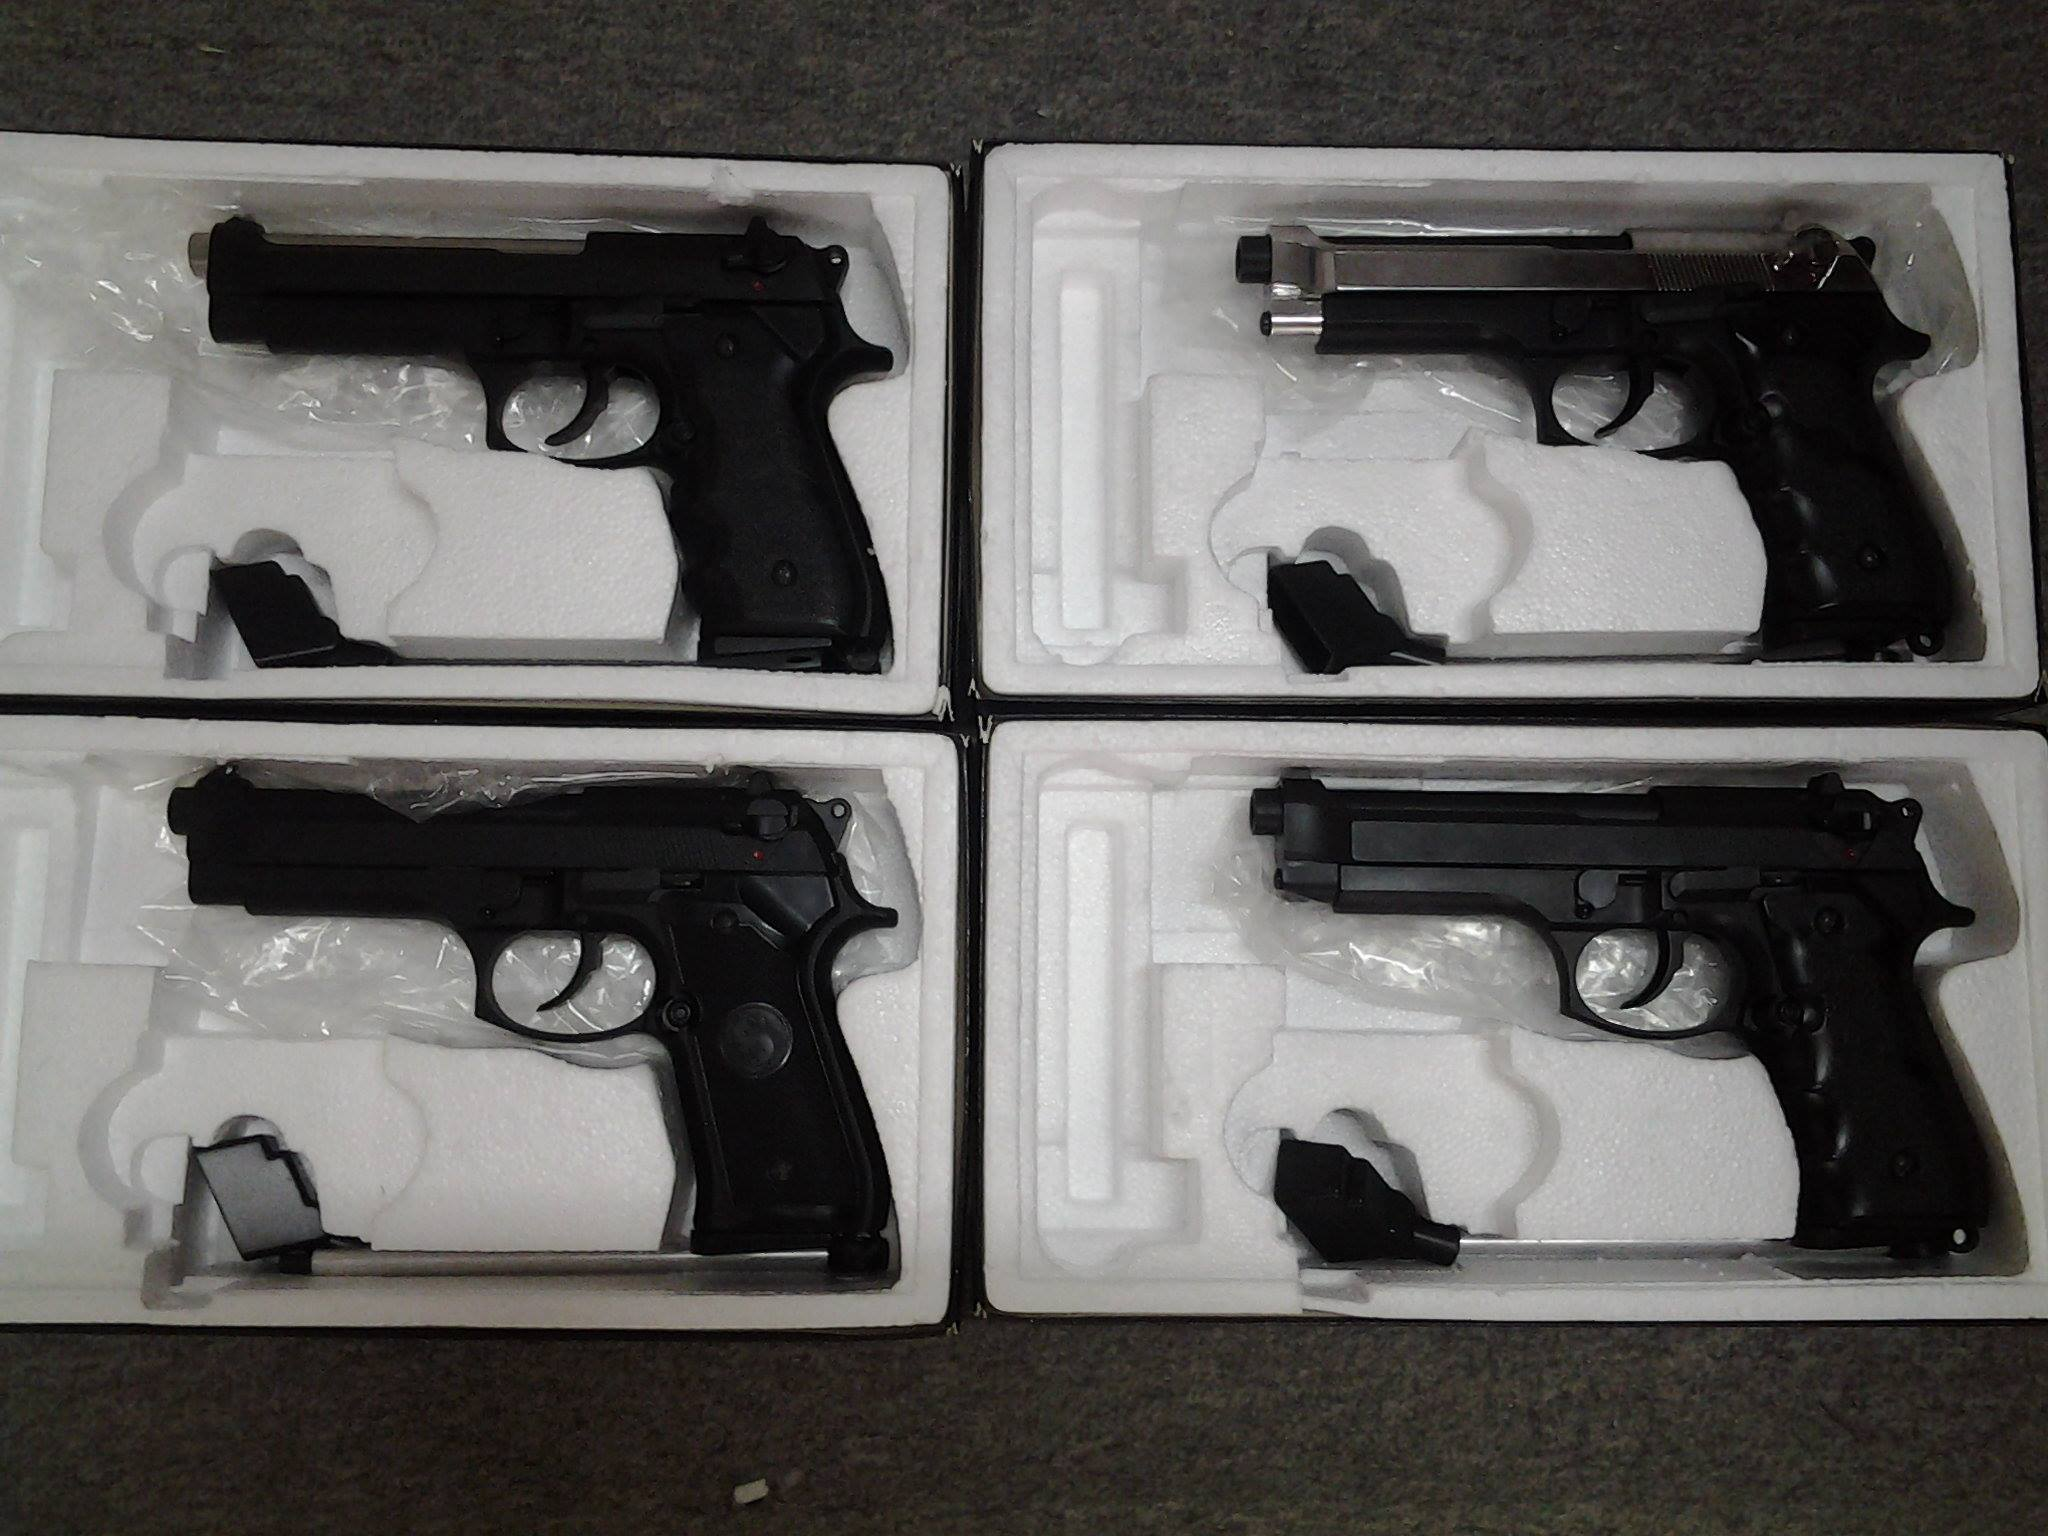 Weekend Promo KSC;New Arrival WE Metal M5K SMG GBB;LS GBB Pistol LS-GBB%204